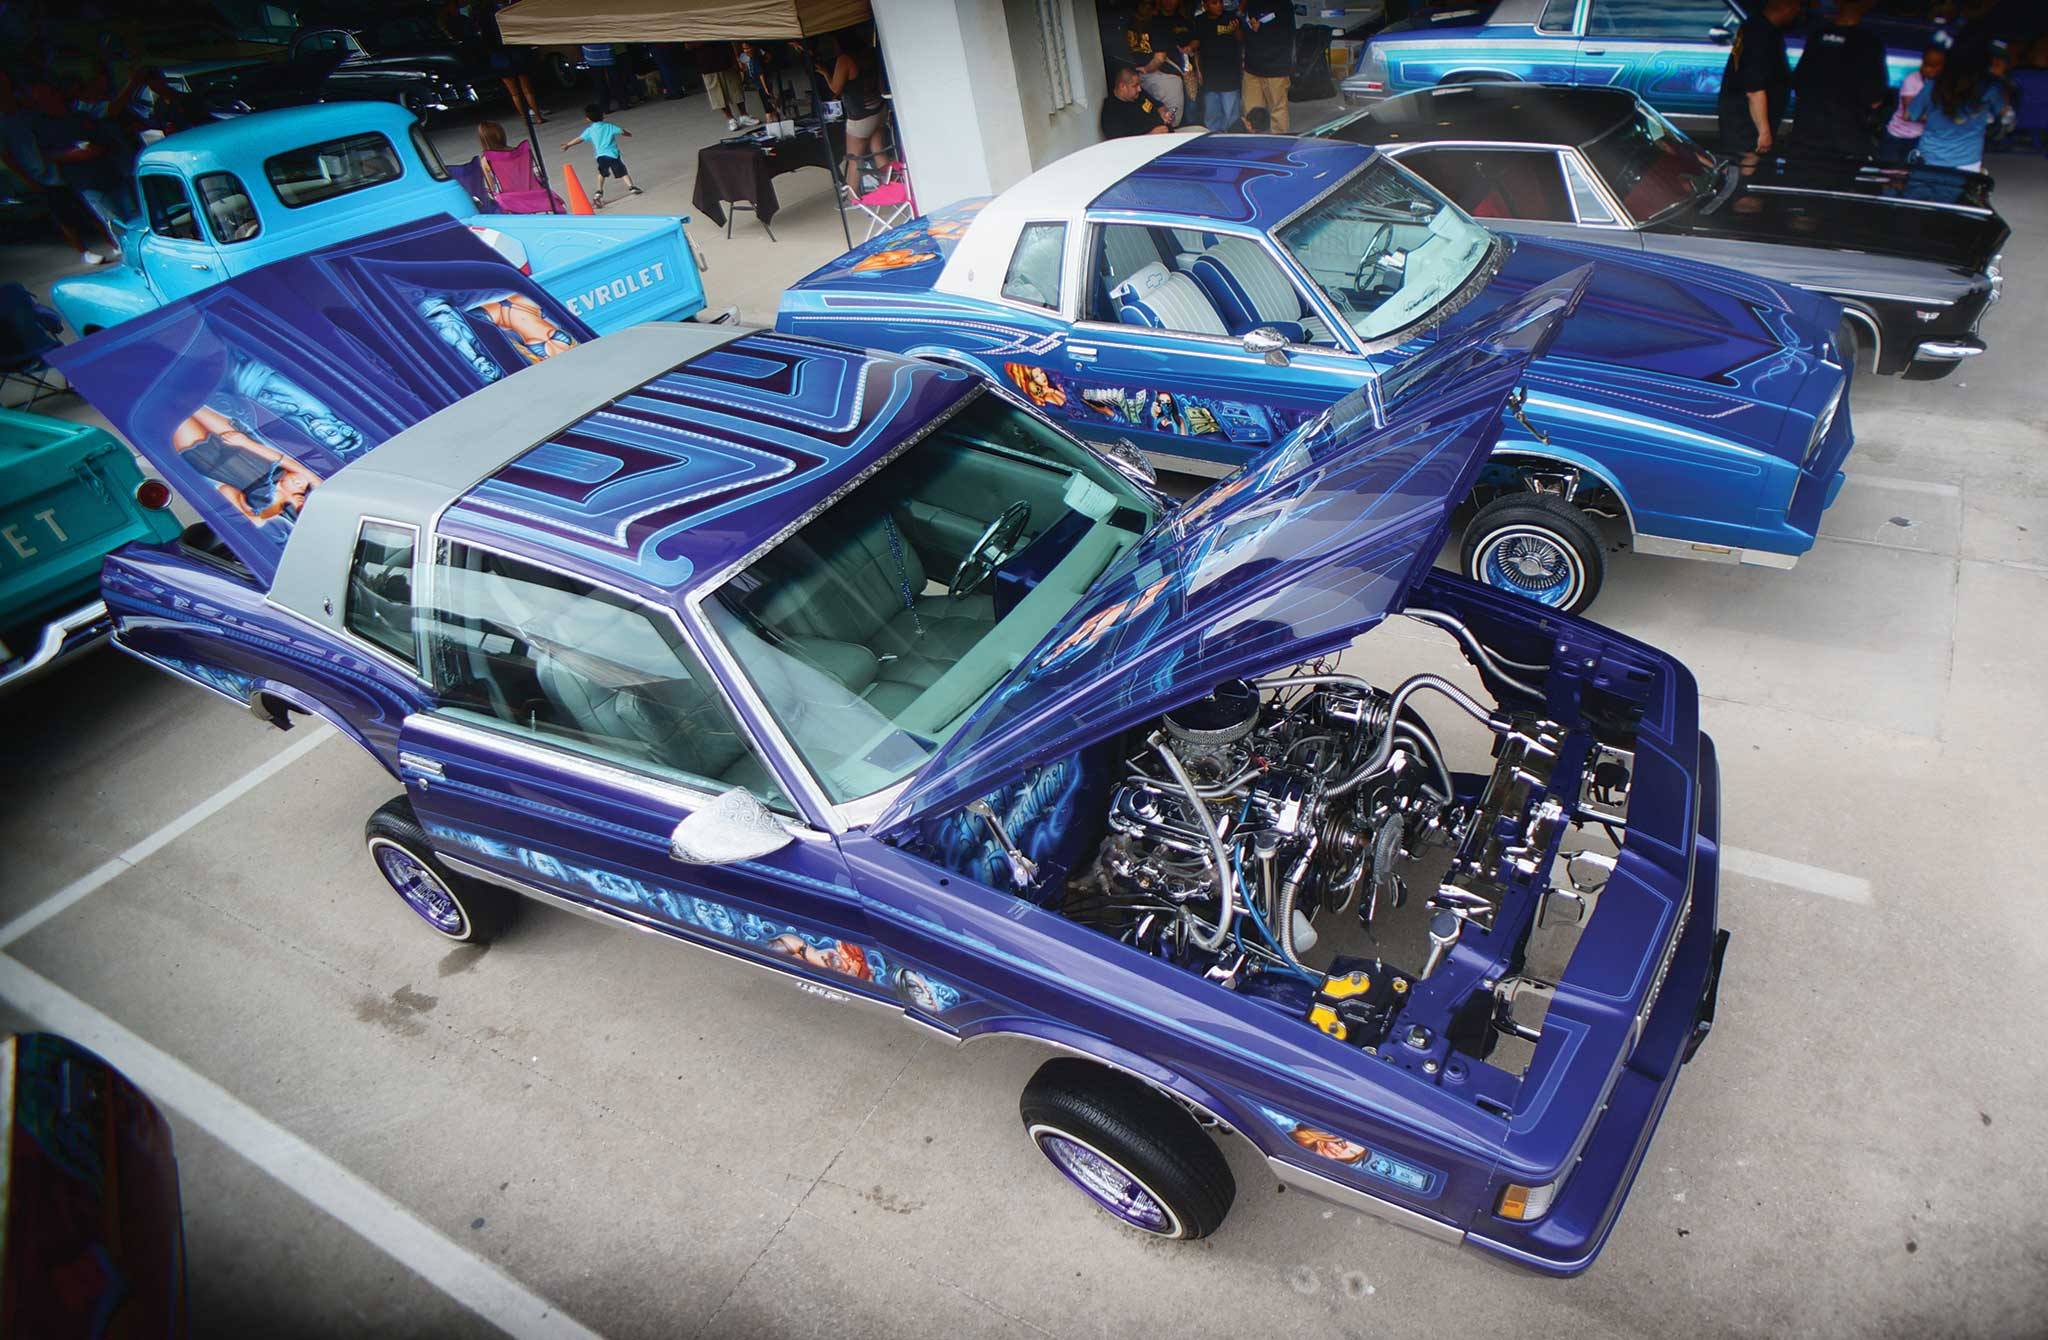 Family is a huge part of the lowrider culture, and it was everywhere to be seen at this event.